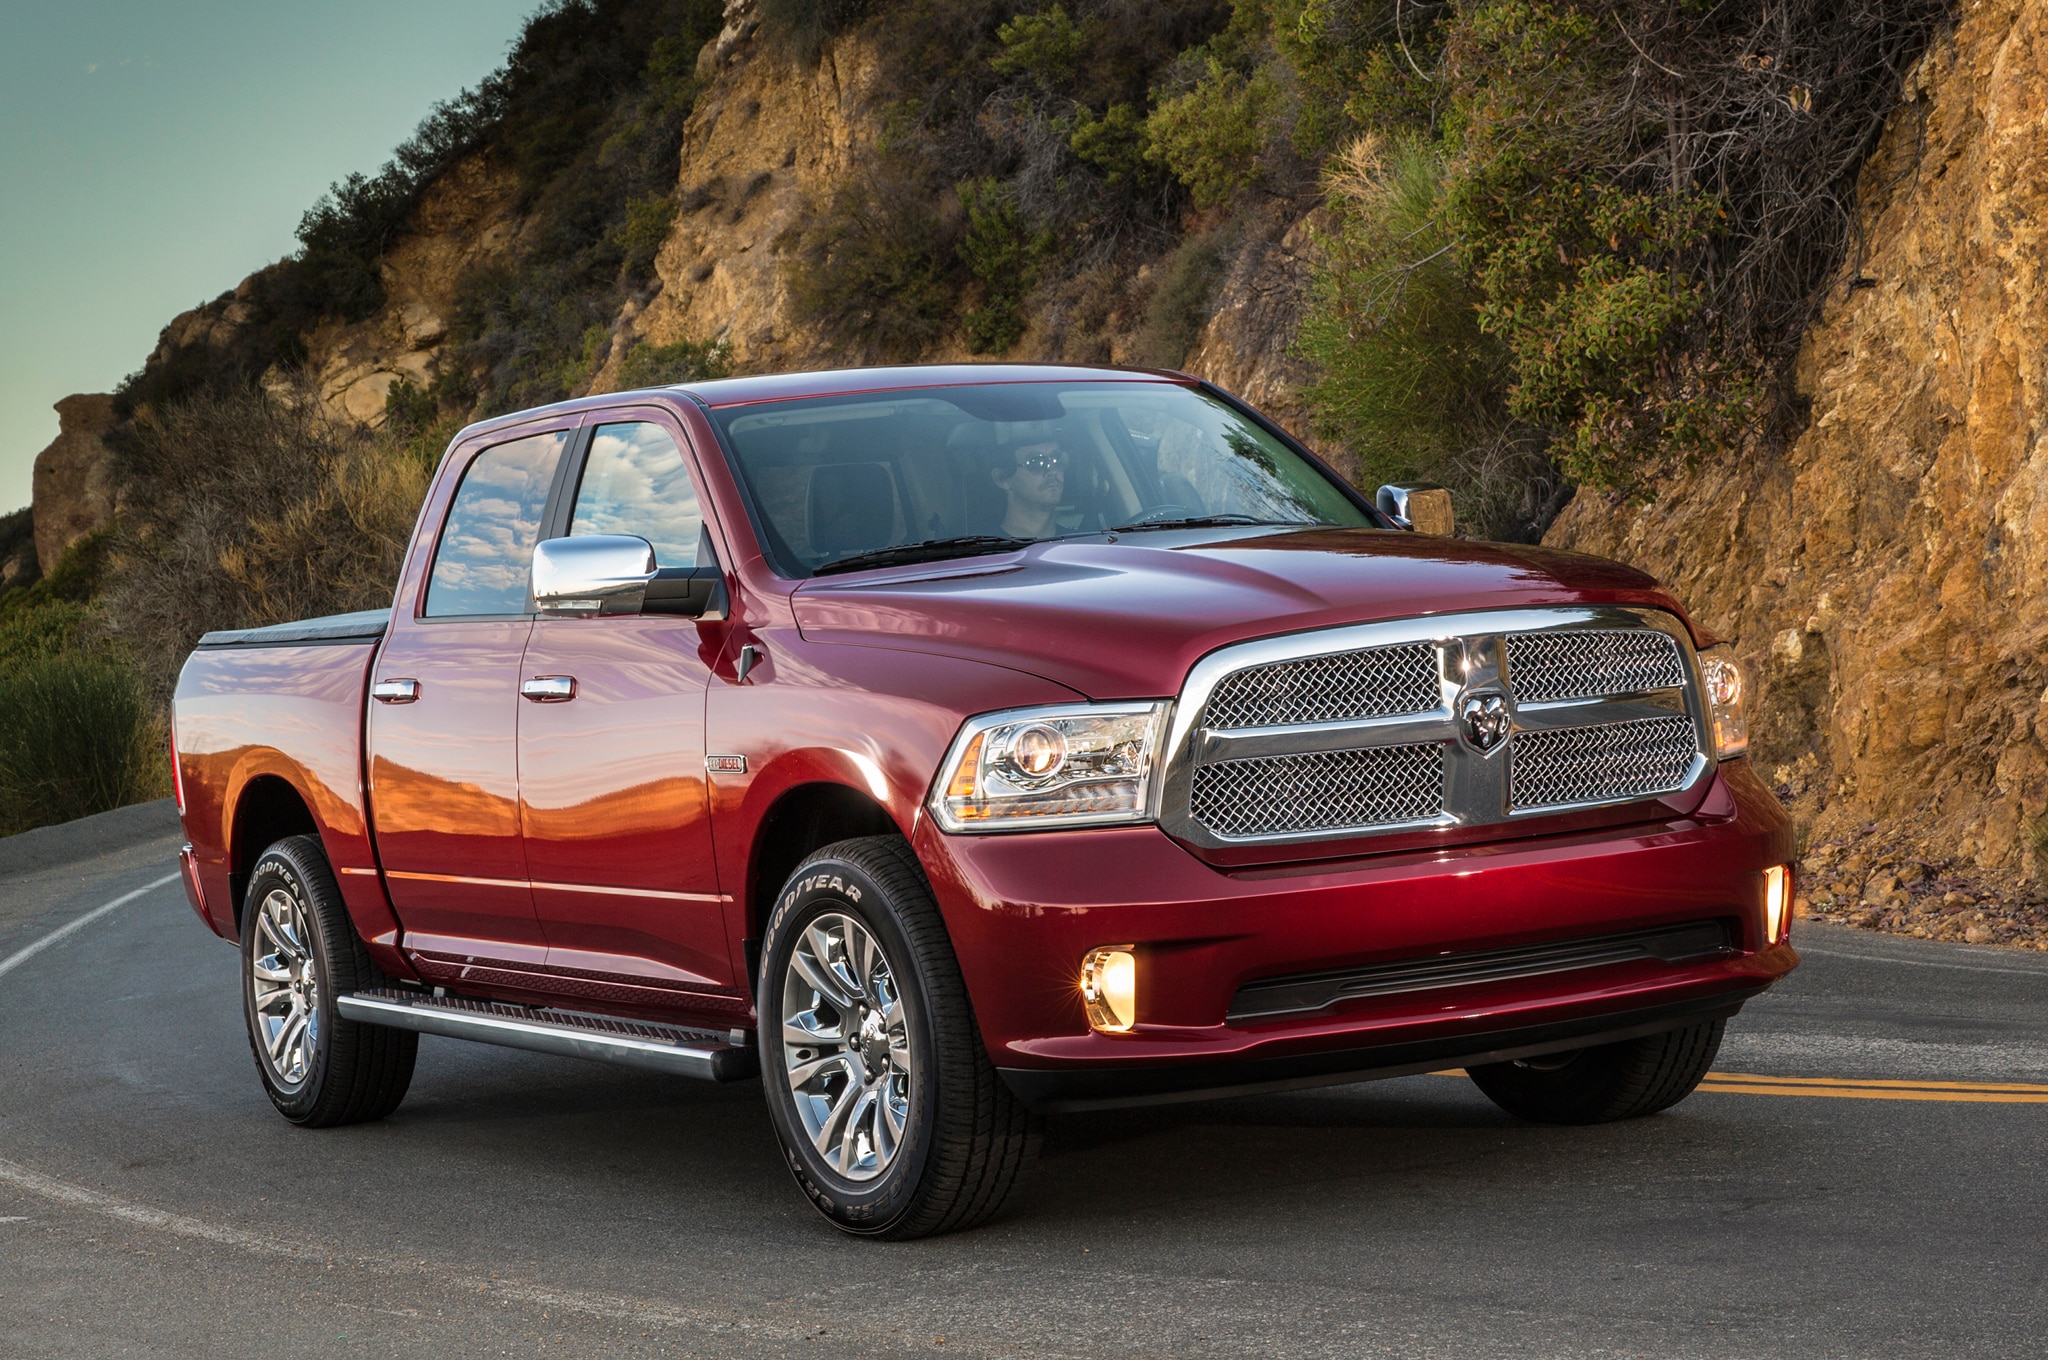 2014 ram 1500 ecodiesel exceeds expectations automobile magazine. Black Bedroom Furniture Sets. Home Design Ideas